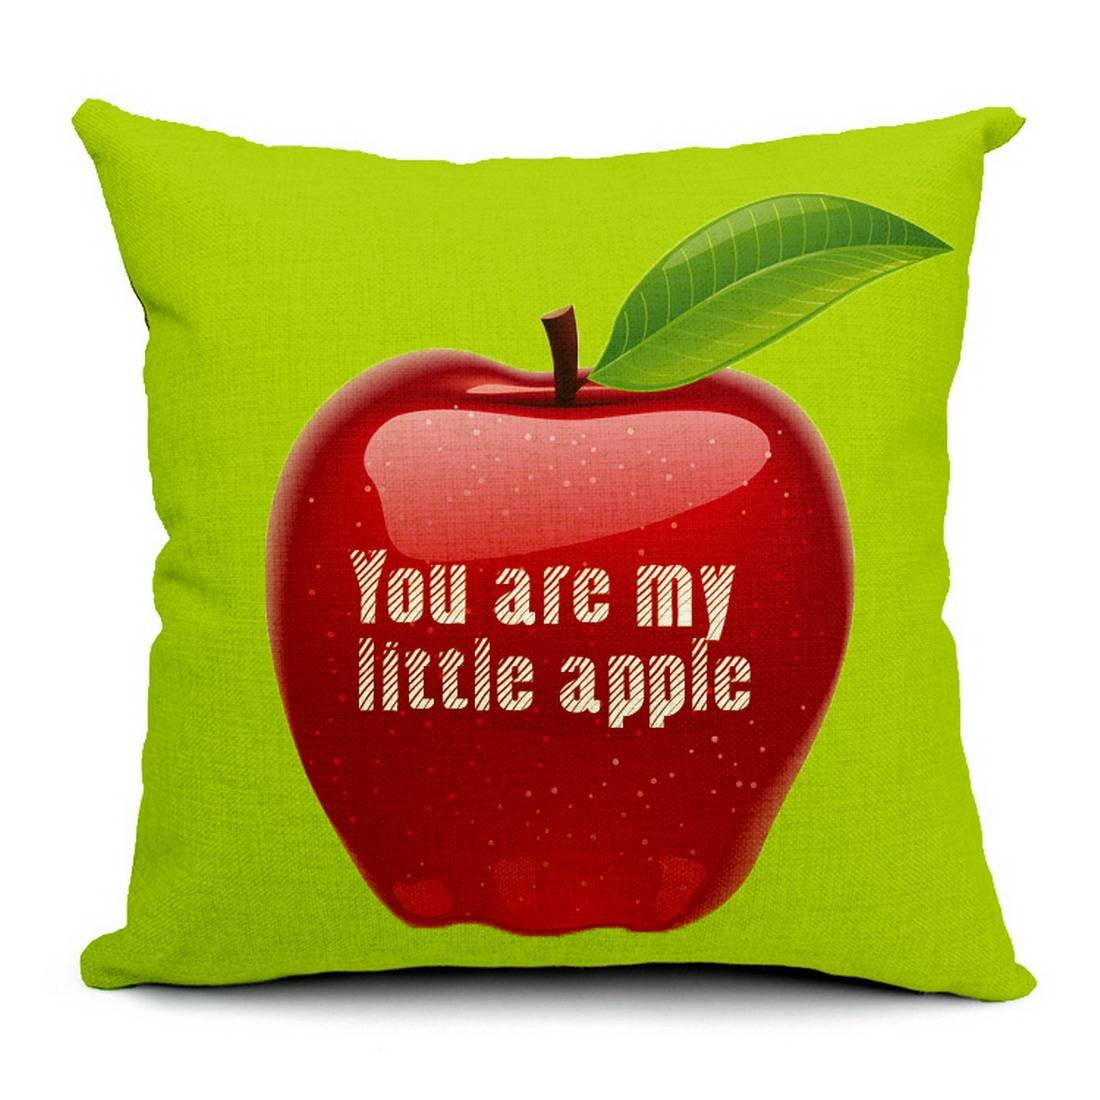 COMVIP Zipper Cotton Throw Pillowcase Decorative for Couch Bed Little Apple #1